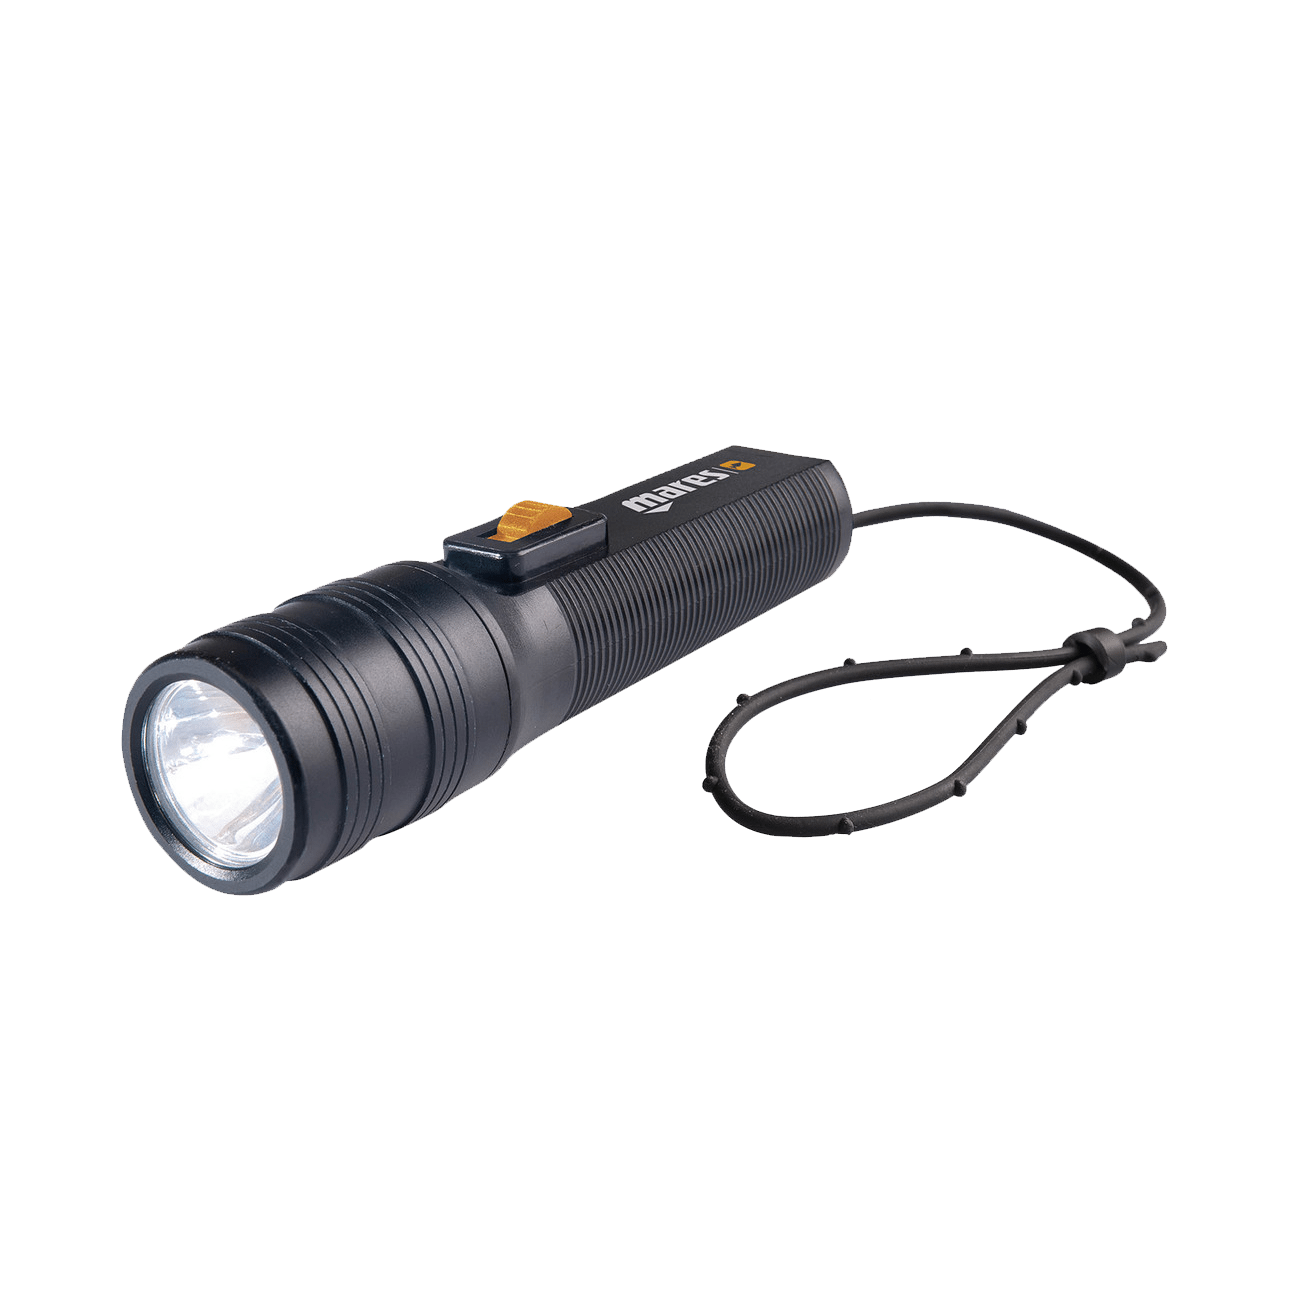 Mares EOS Torch | Mares Torch | Mares Singapore